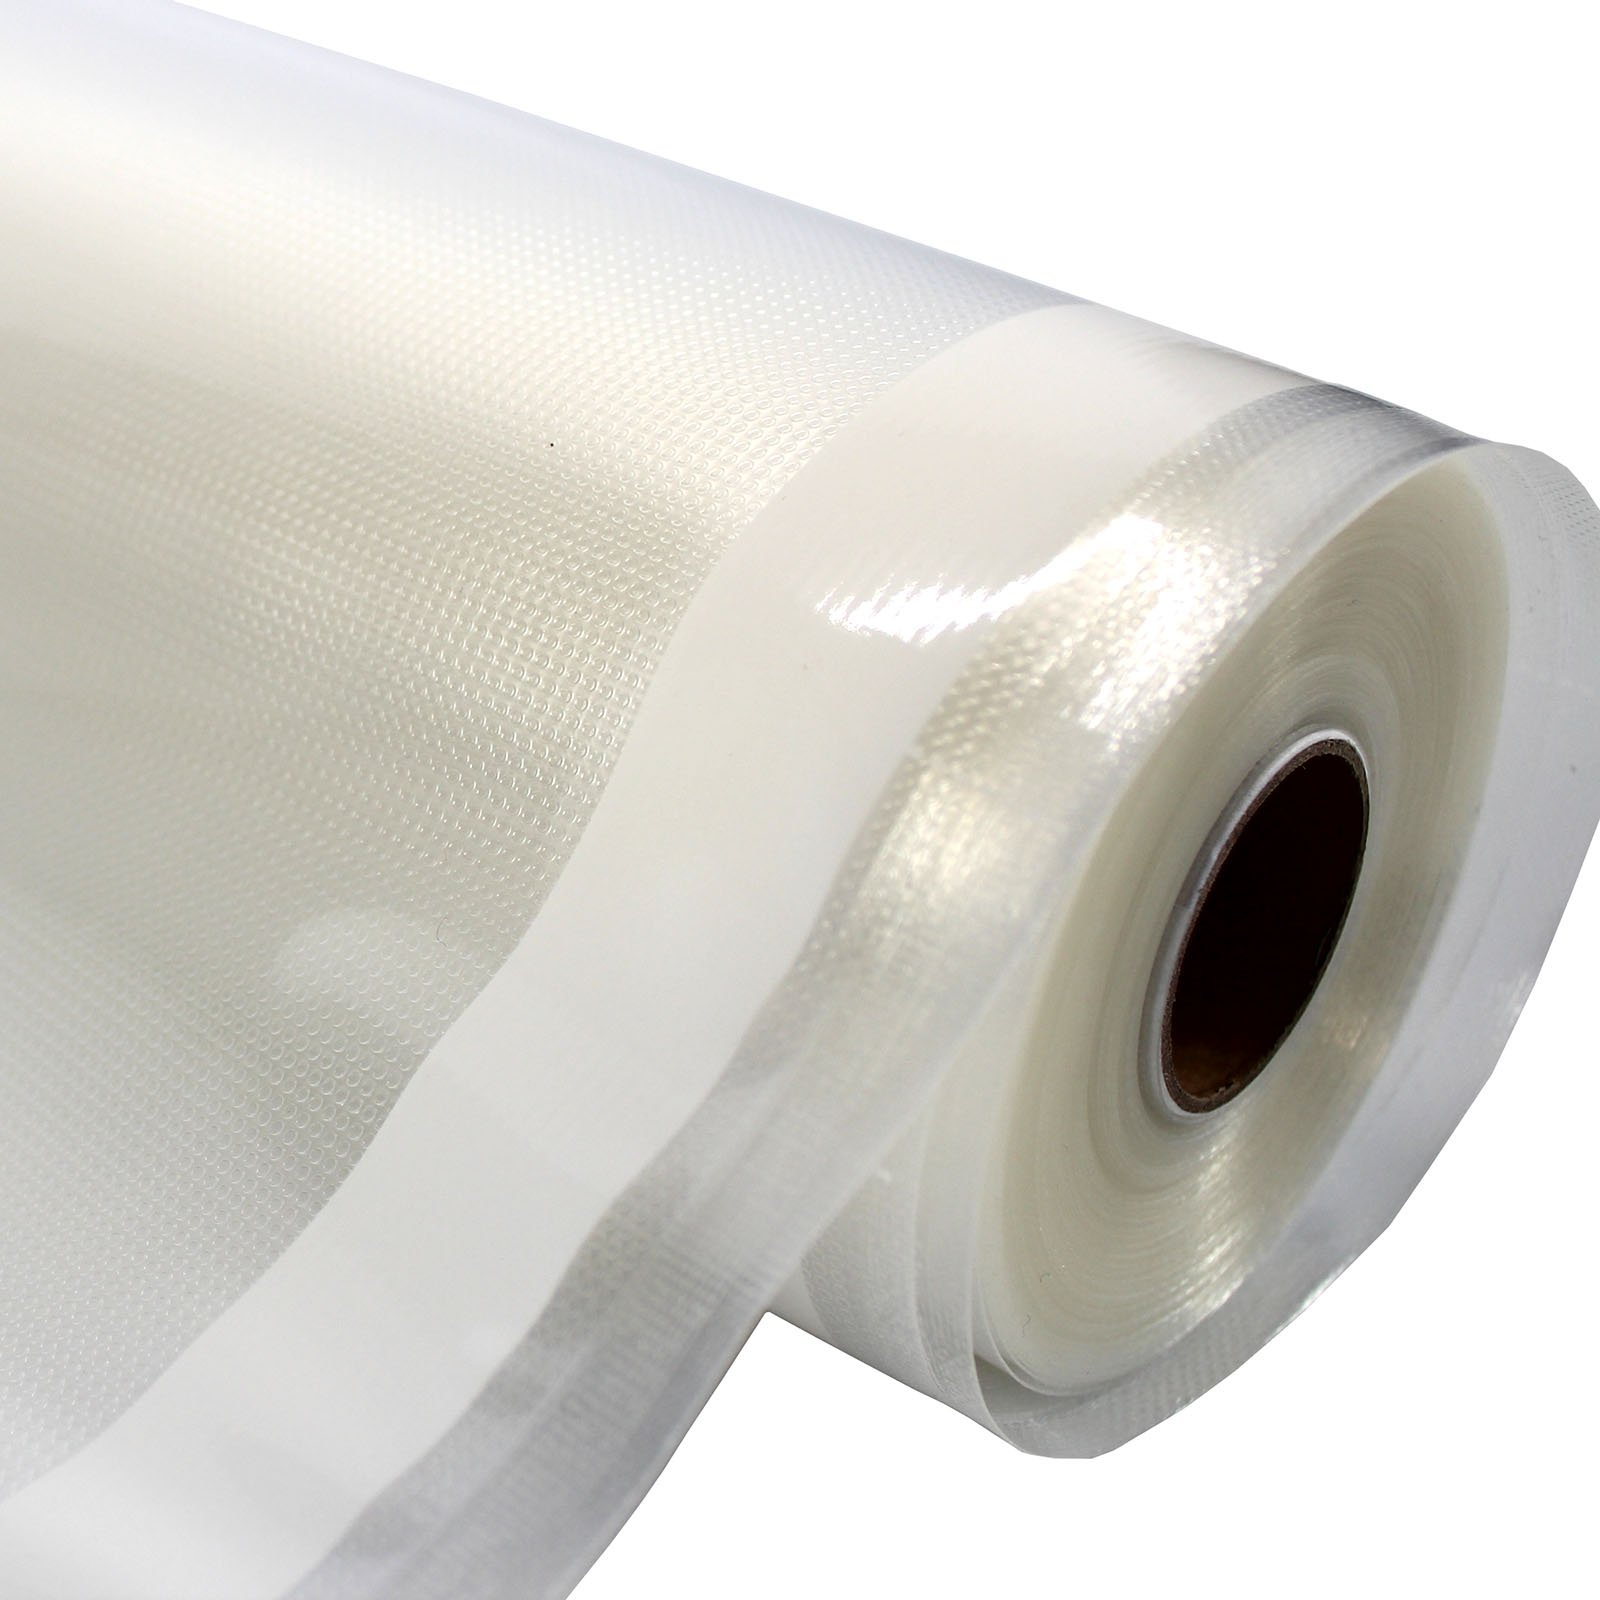 2 Large 8'' x 50' Vacuum Saver Rolls Commercial Grade Food Sealer Bags by Commercial Bargains by Commercial Bargains (Image #8)